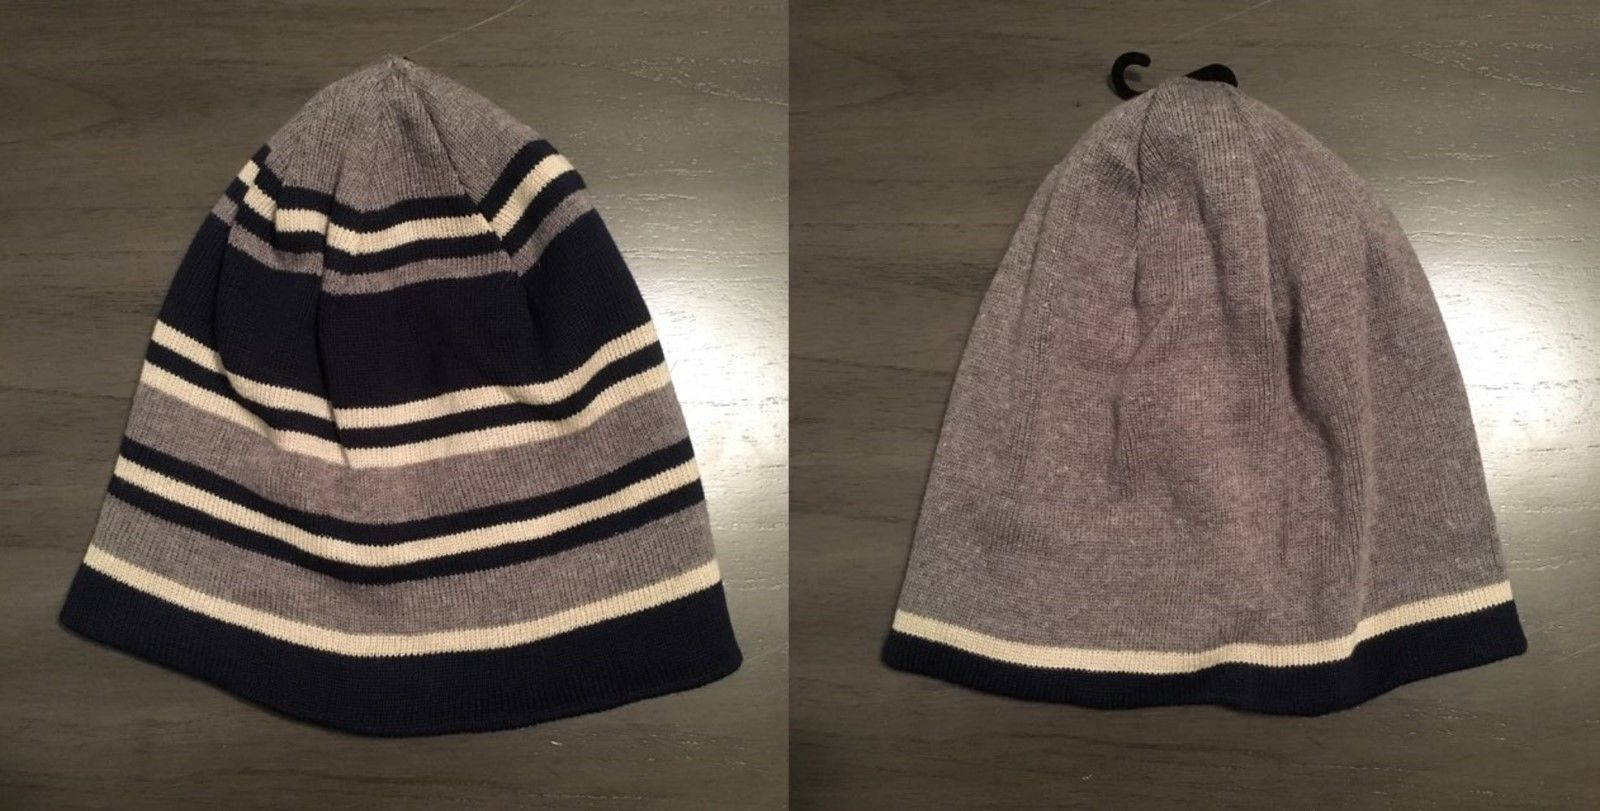 NWOT Levi's Reversible Dark Blue, Gray & Cream Beanie Hat One Size Fits Most - $16.99